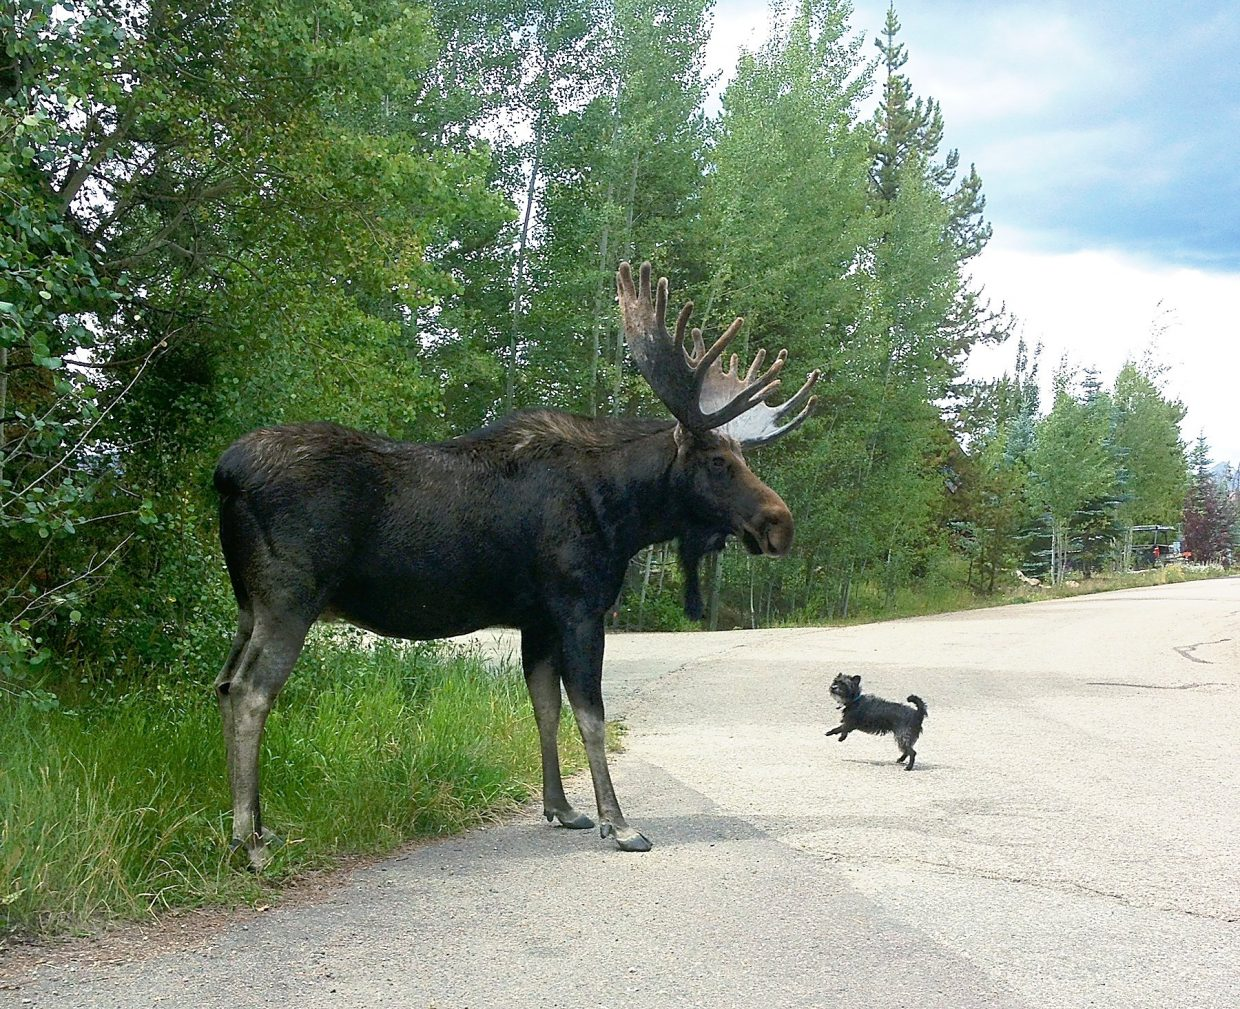 Wildlife officials: Moose, dogs don't mix | SkyHiNews.com